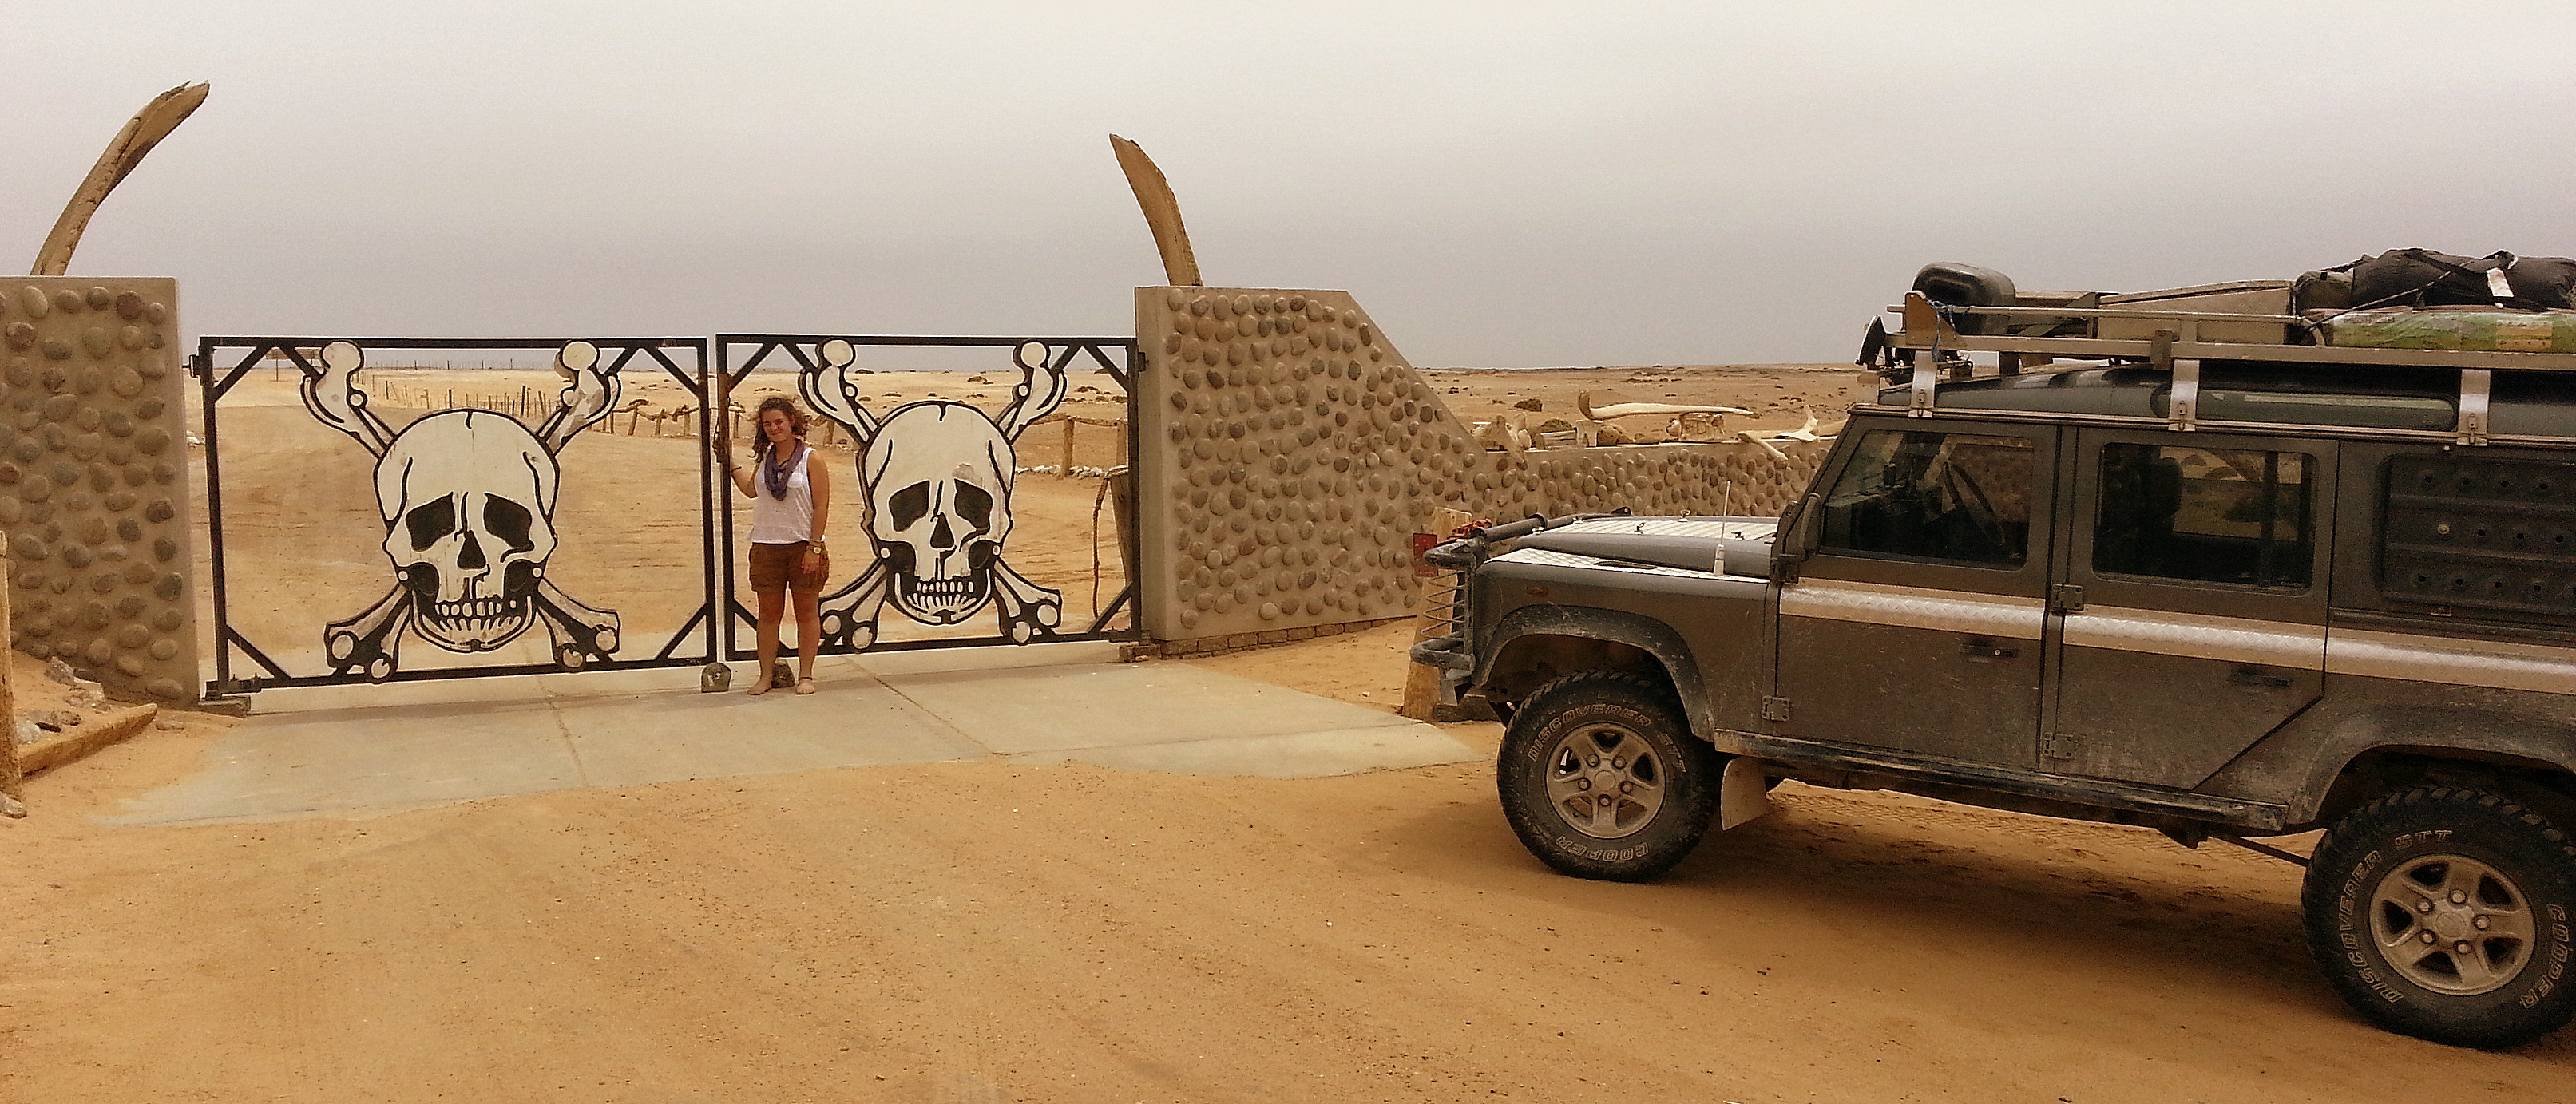 Happy girl at Ugab river gate, the Southern entry point into the Skeleton Coast National Park.